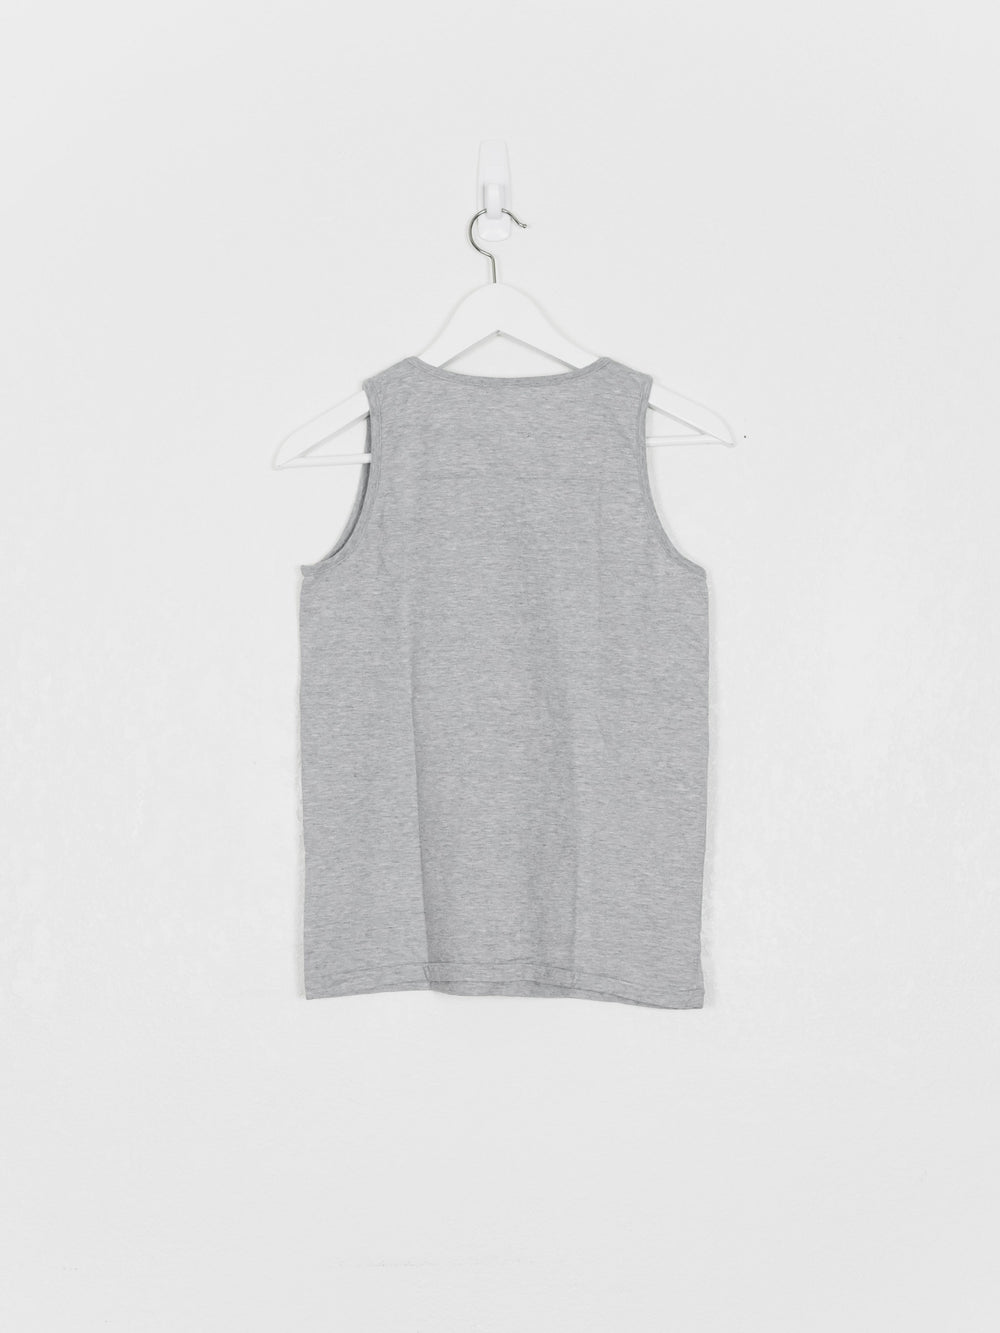 Issey Miyake Issey Sport Tank Top